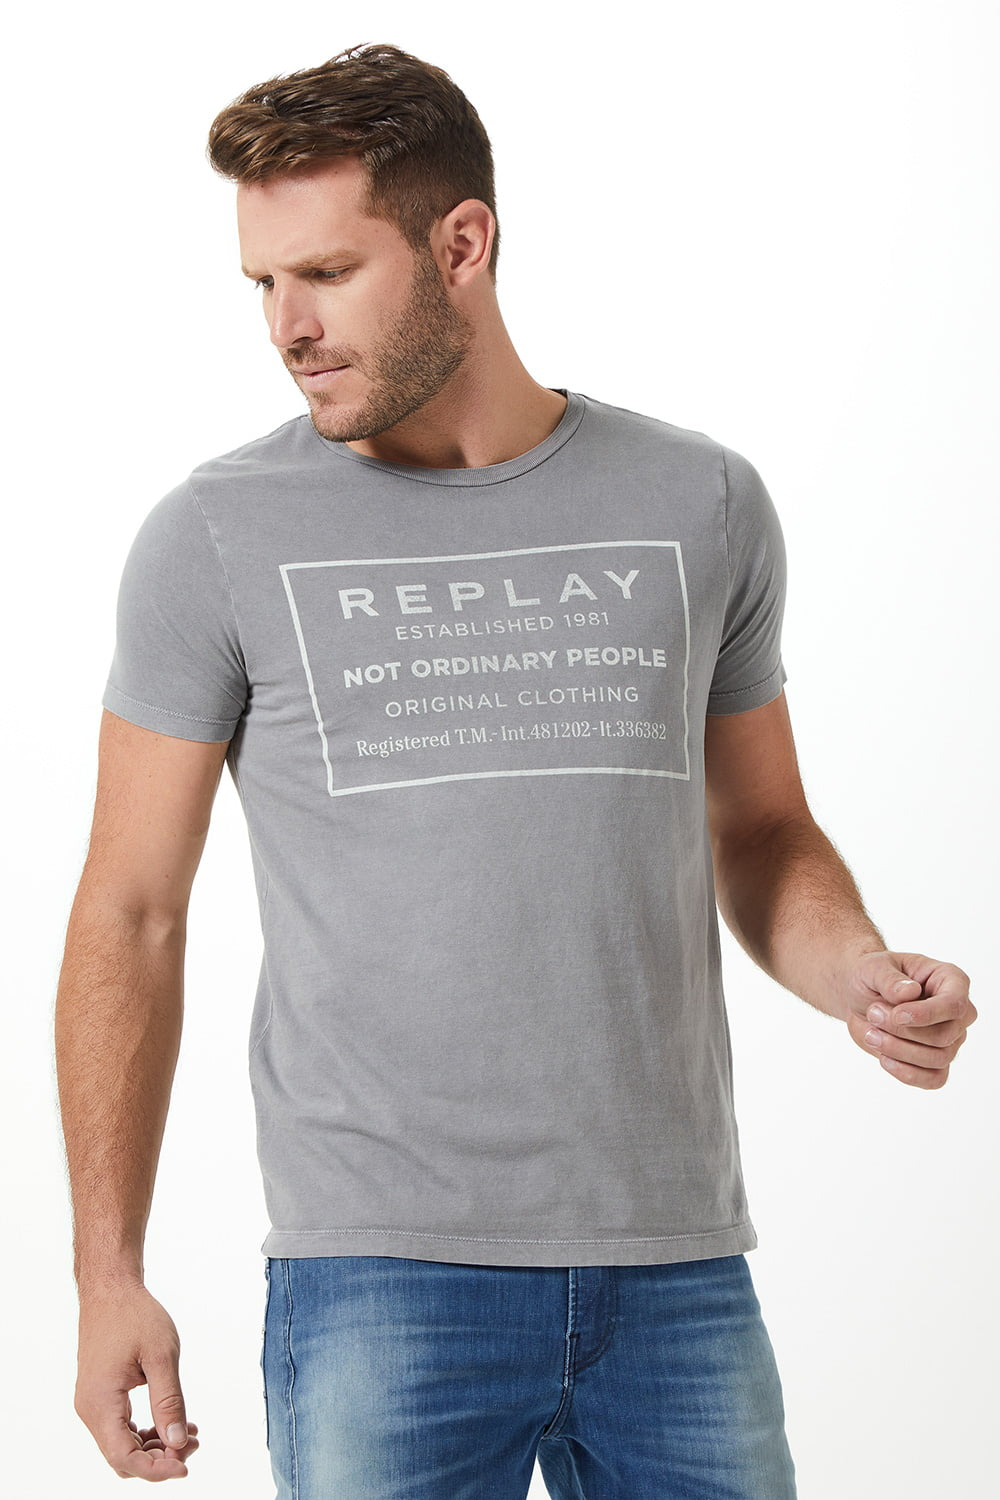 T-SHIRT REPLAY 1981 CINZA